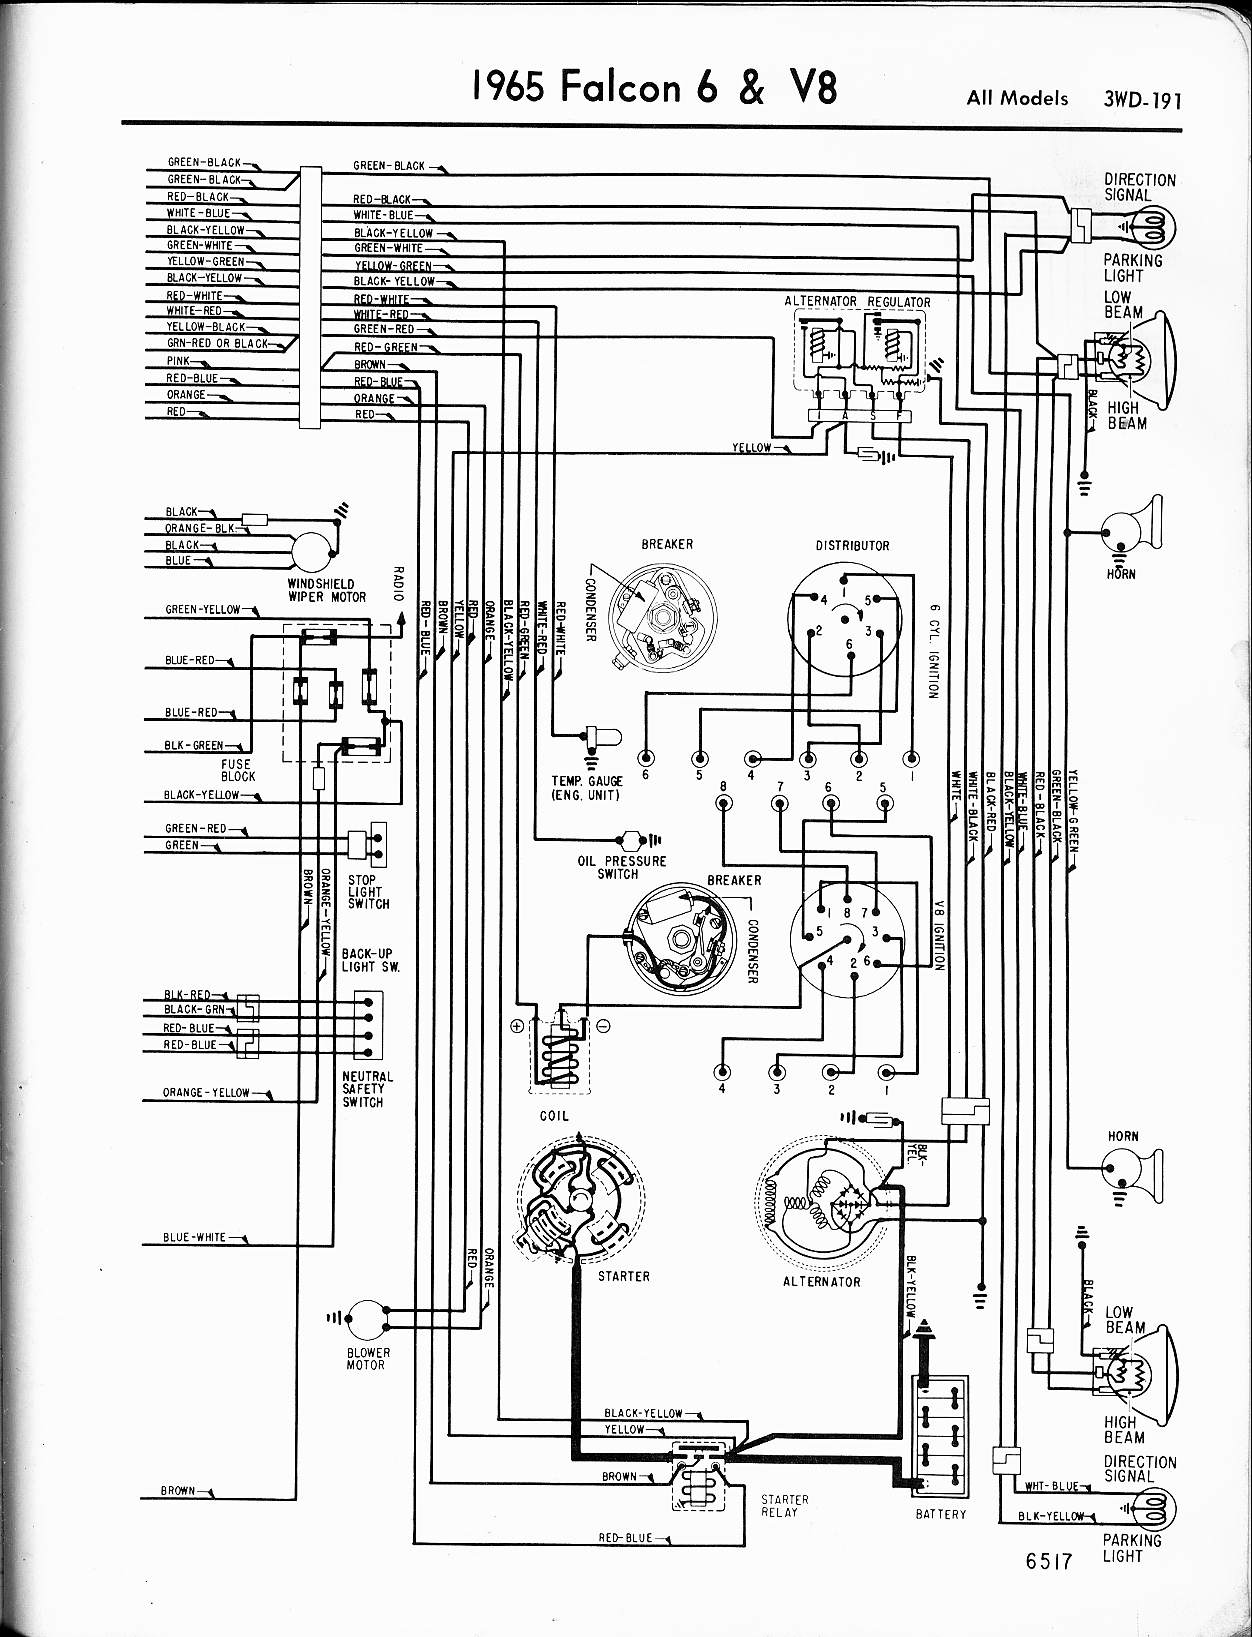 Wiring Diagram For 1965 Falcon Schema Online Ford Wire Harness 1964 Ignition Schematic Diagrams 1998 Mustang 57 65